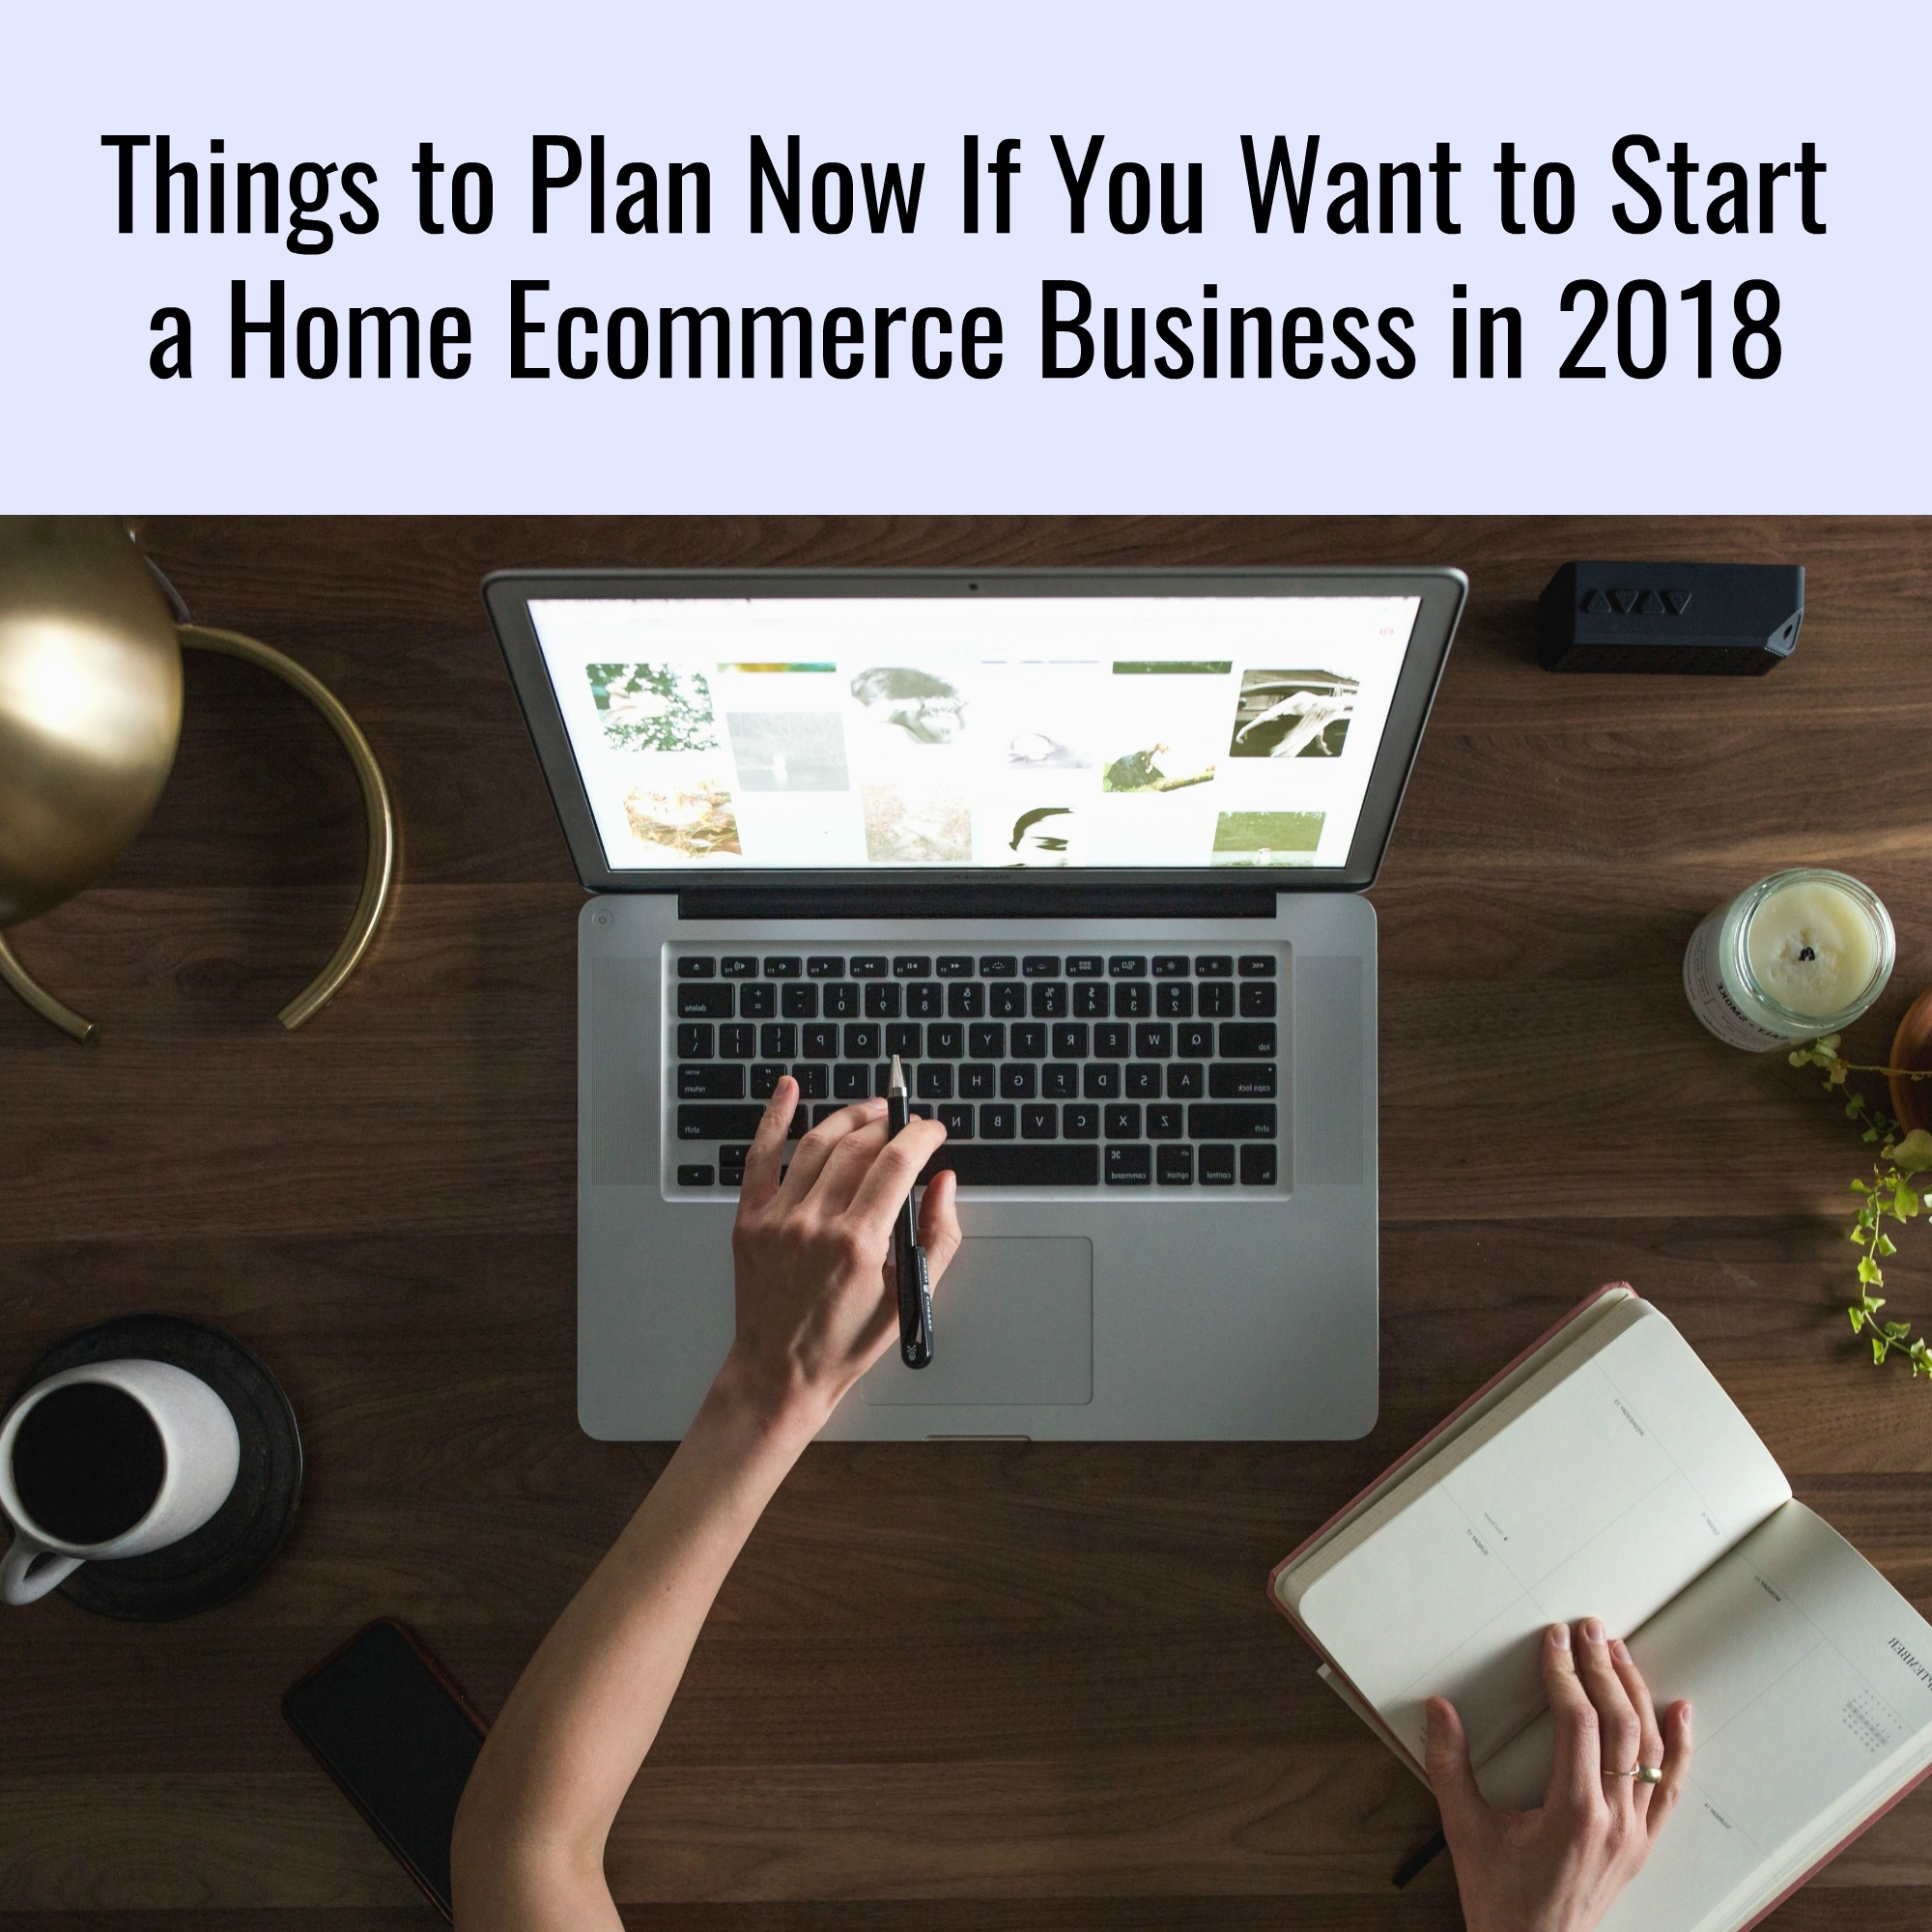 Things to Plan Now If You Want to Start a Home Ecommerce Business in 2018